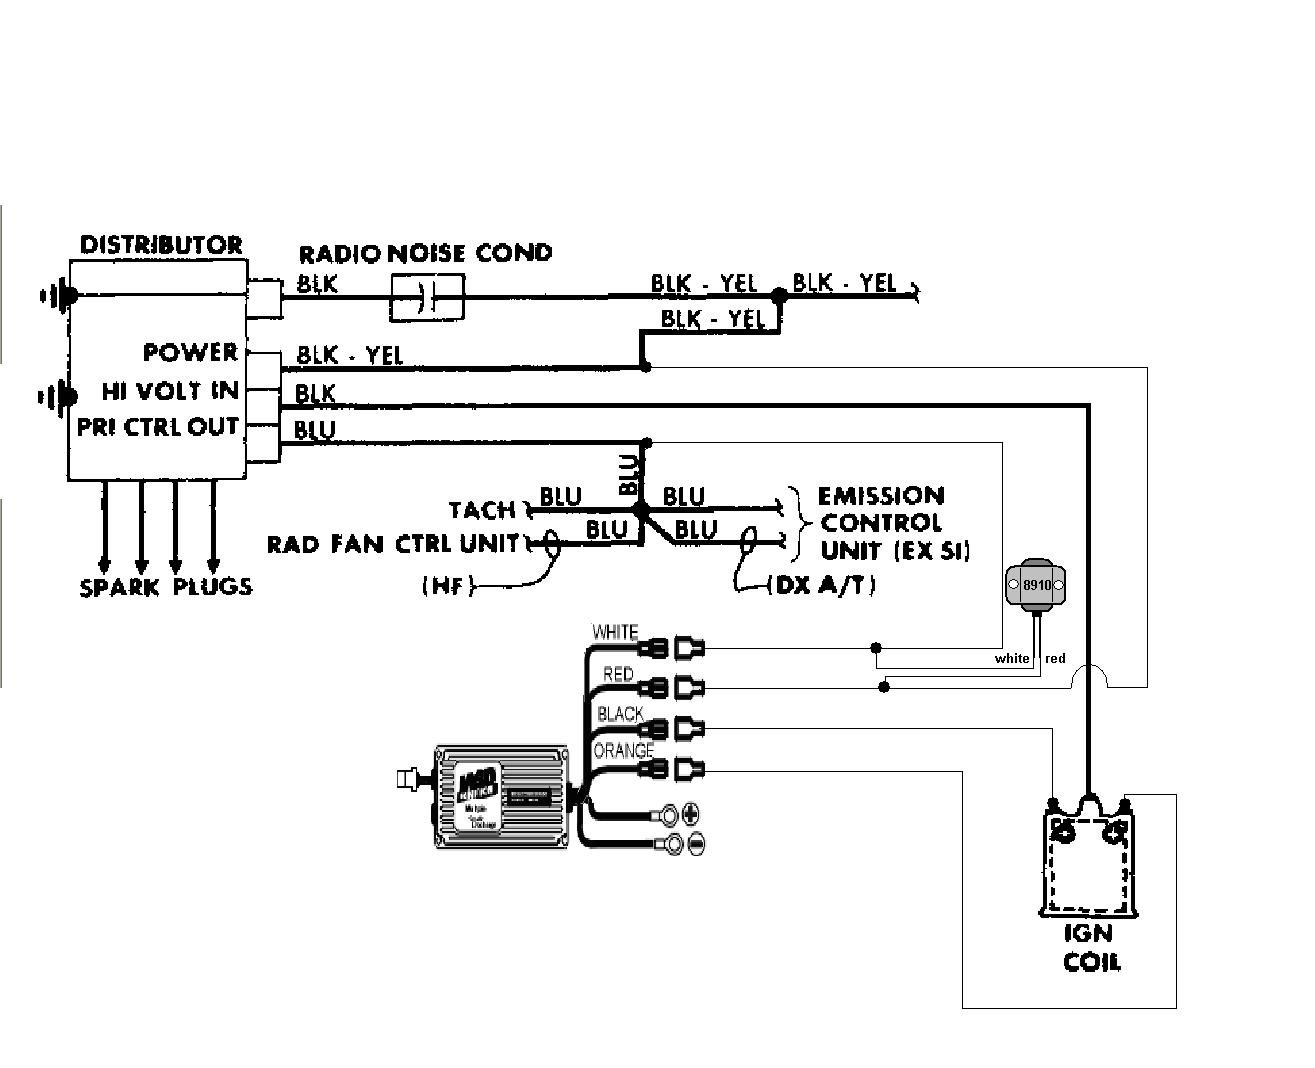 1989 honda civic stereo wiring diagram wiring diagram and hernes 1997 honda accord stereo wiring diagram and hernes